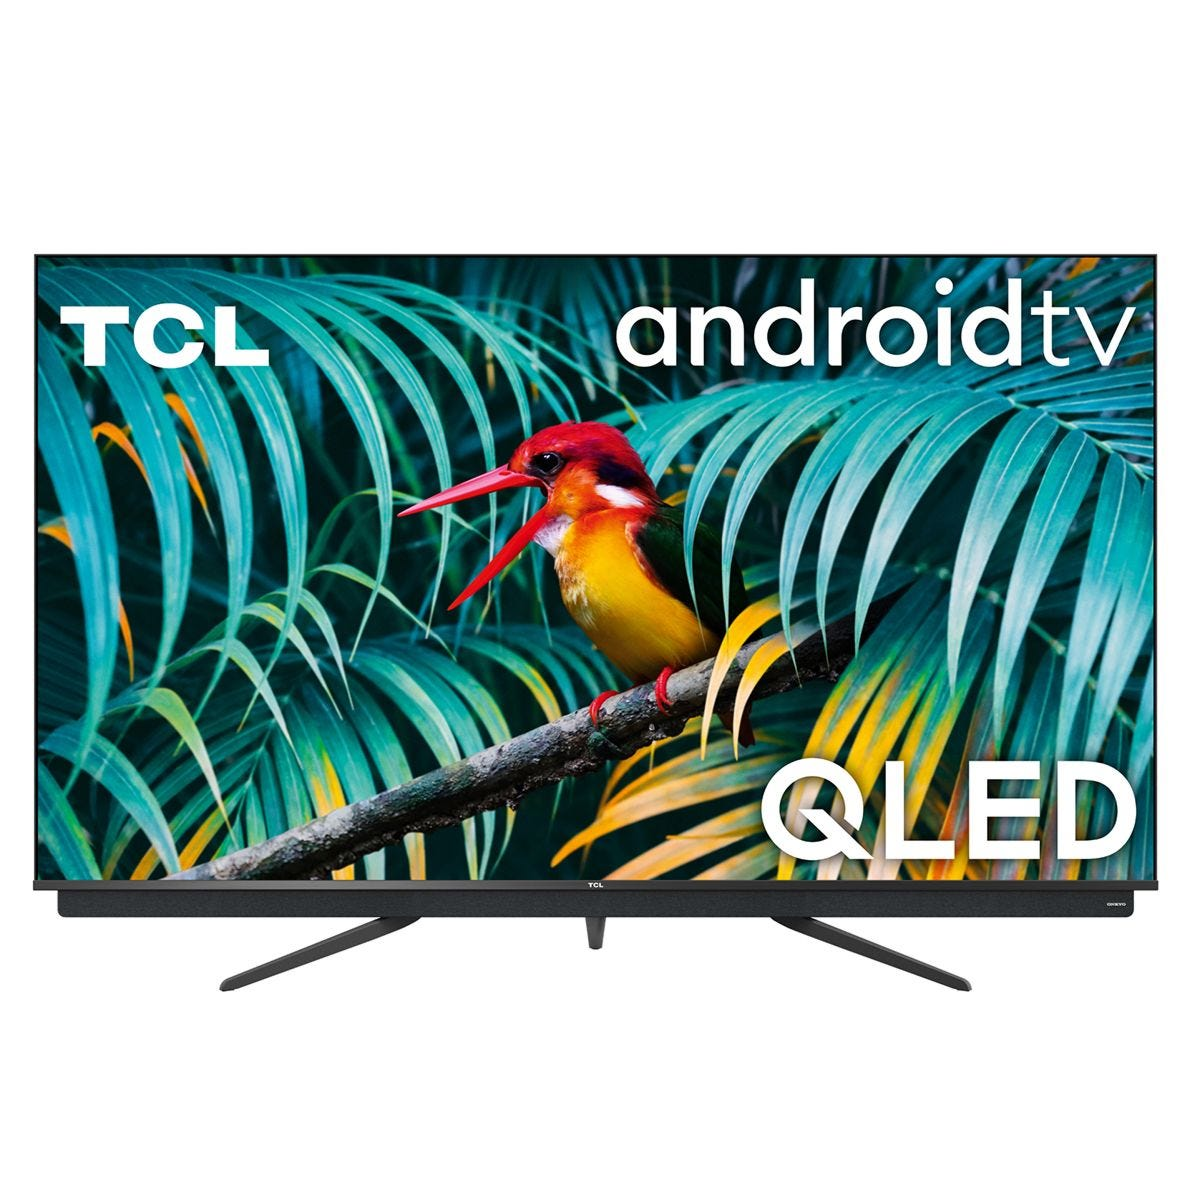 TCL 55C815K 55 inch QLED, 4K Ultra HD, Smart Android TV with Freeview Play & Onkyo Sound